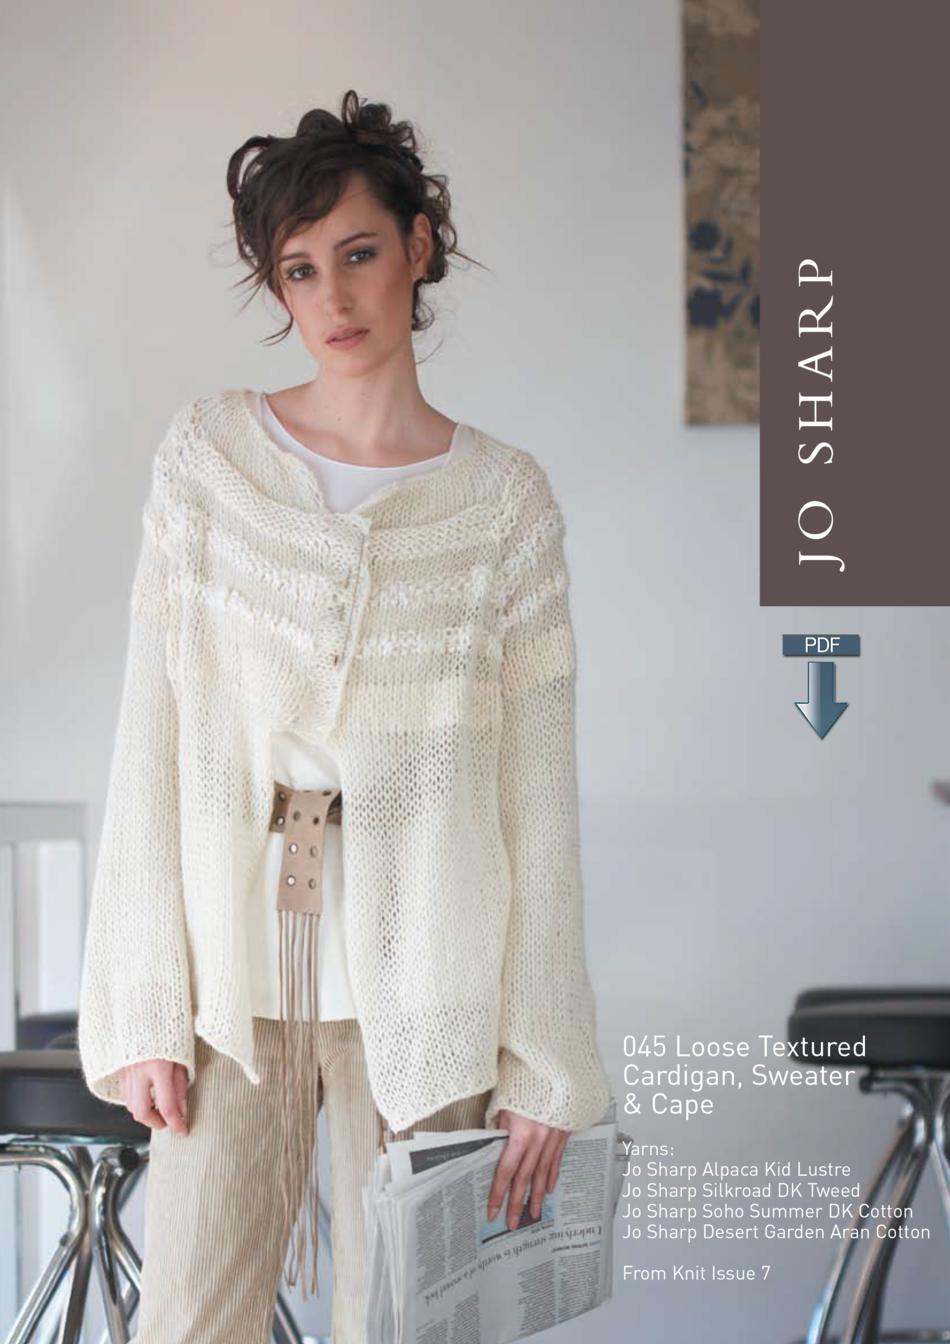 Knitting Patterns Jo Sharp Loose Textured Cape Cardigan and Sweater  Pattern Download